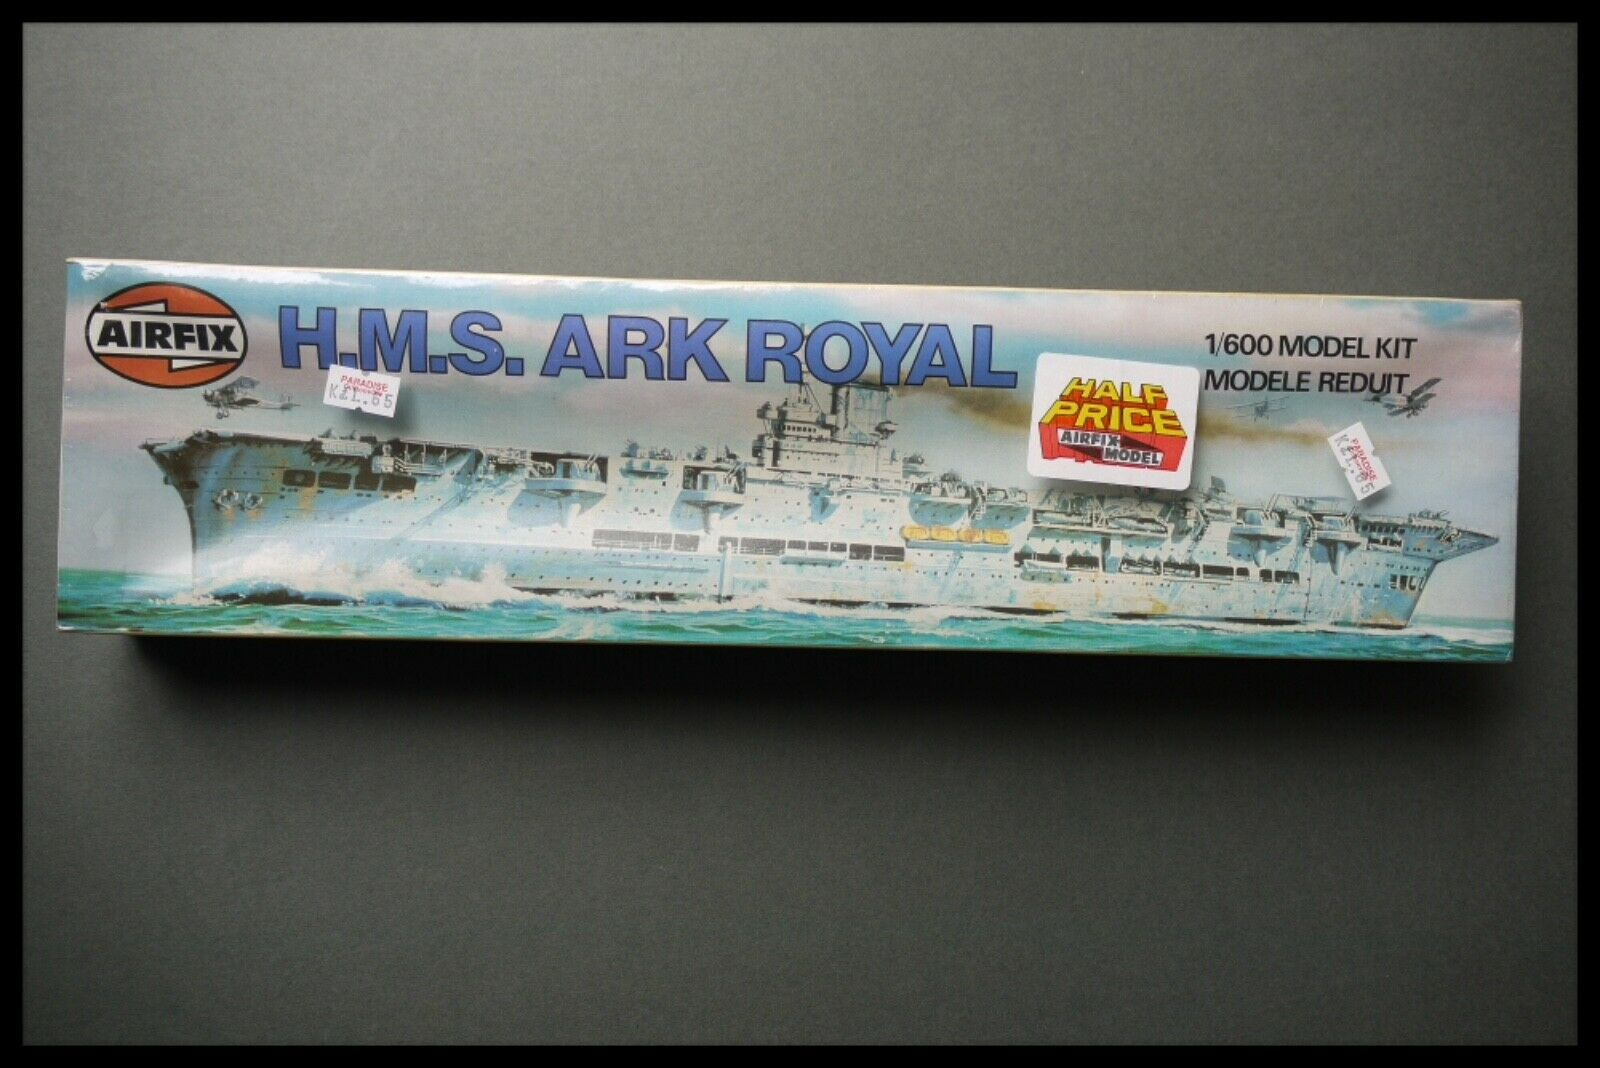 AirFix 1 600 HMS Ark Royal Classic AirFix Factory Sealed Box Series Kit